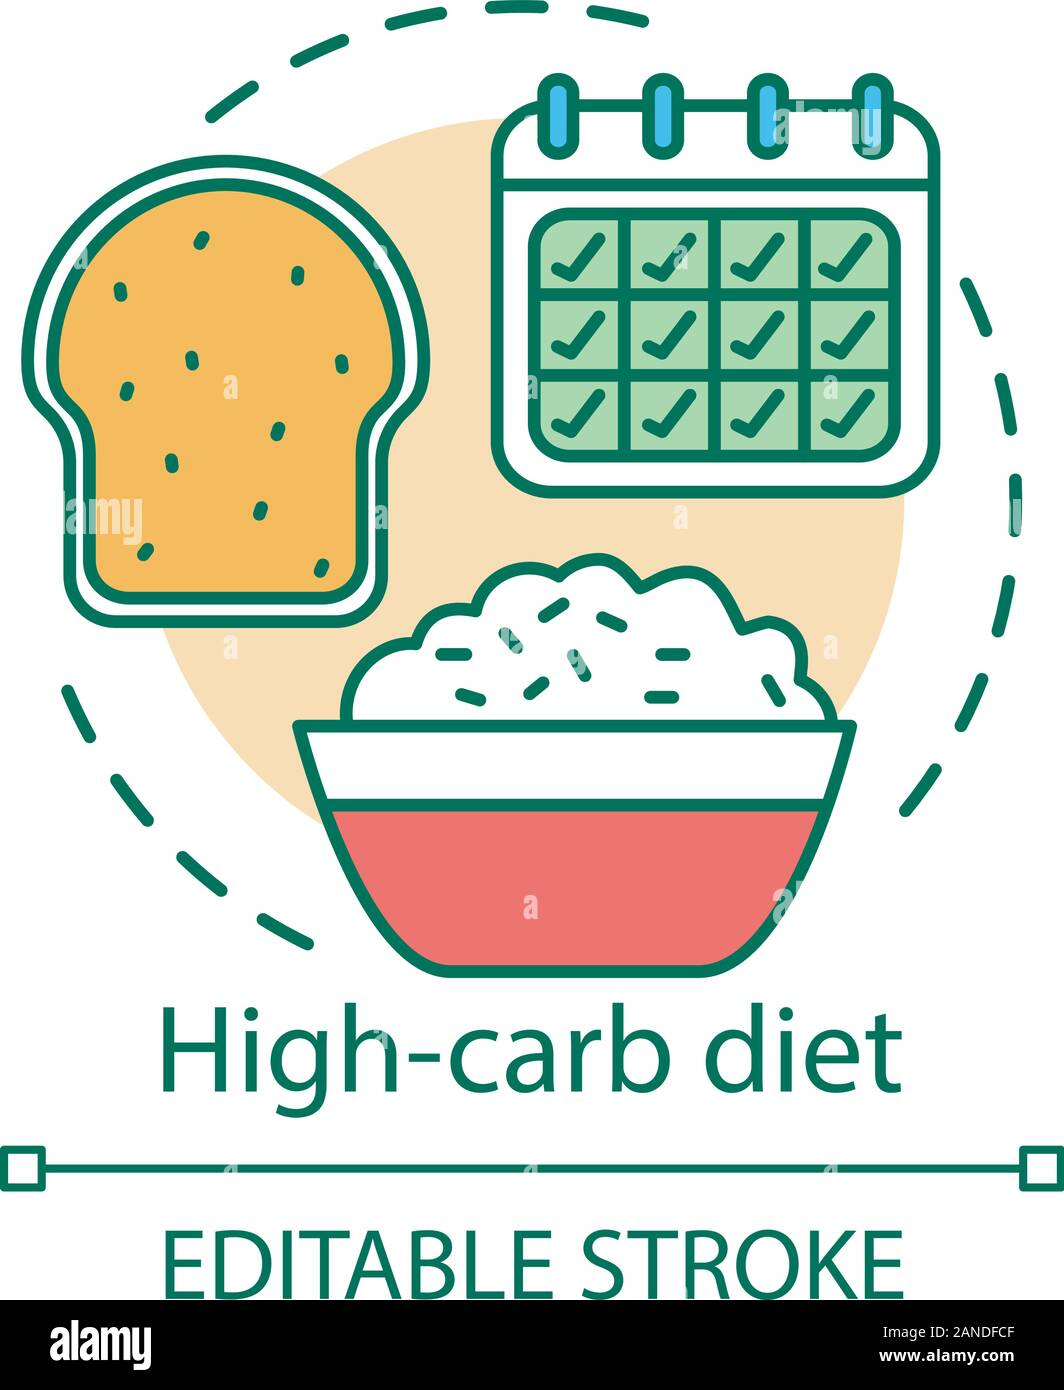 High Carb Diet Concept Icon Vegetarian Nutrition Idea Thin Line Illustration Healthy Food Vegan Lifestyle Rice Bowl Fresh Bread And Calendar Vect Stock Vector Image Art Alamy